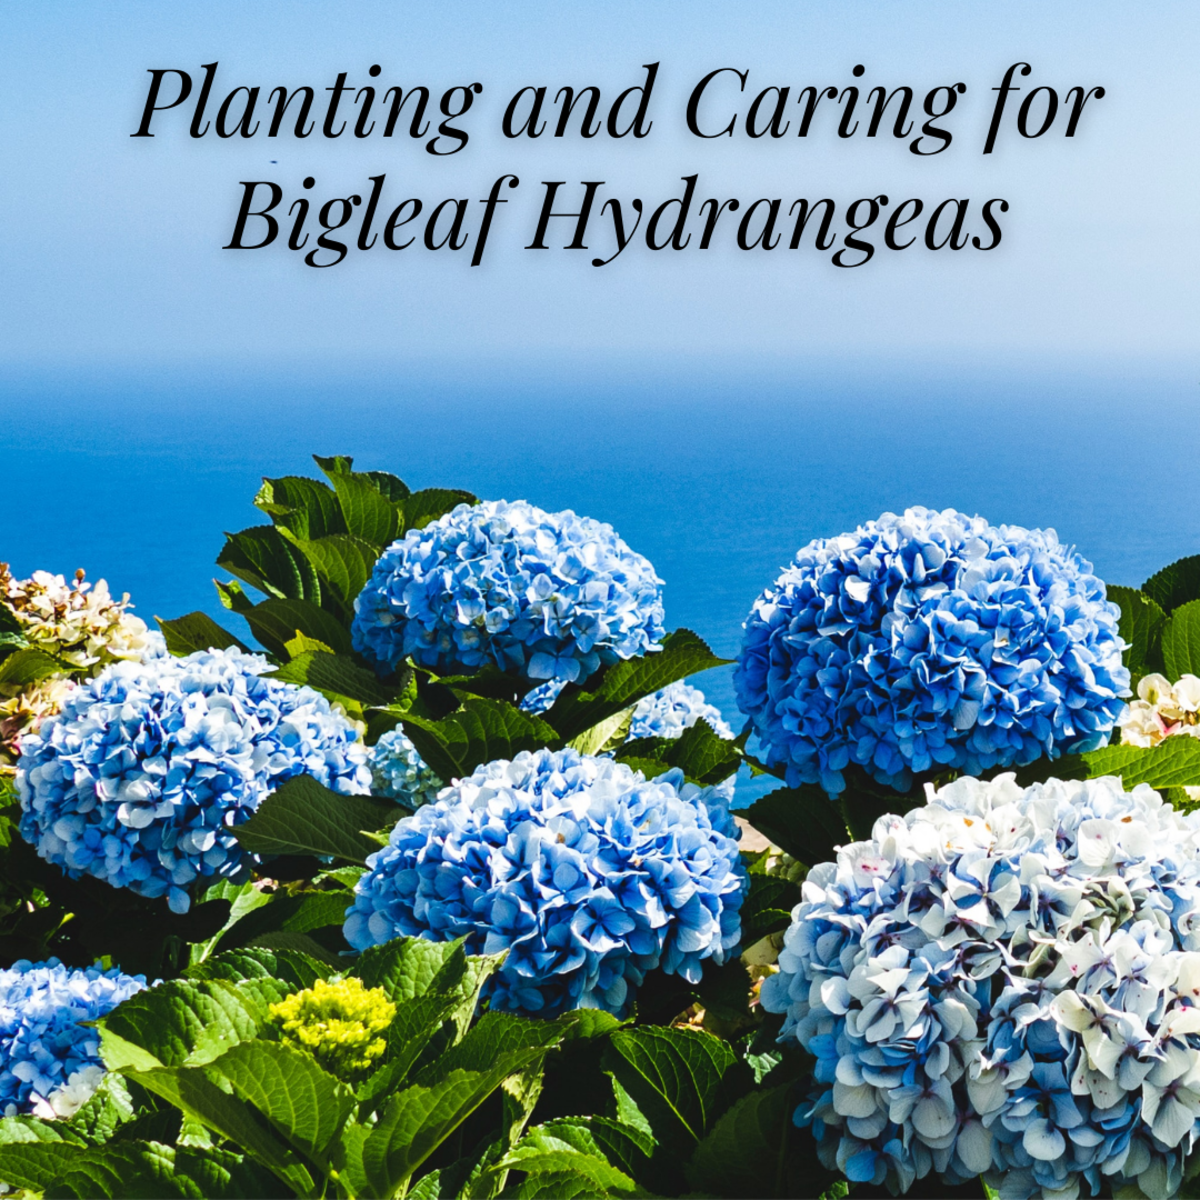 This guide will provide you with all the planting and caring information you need to grow gorgeous bigleaf hydrangeas.